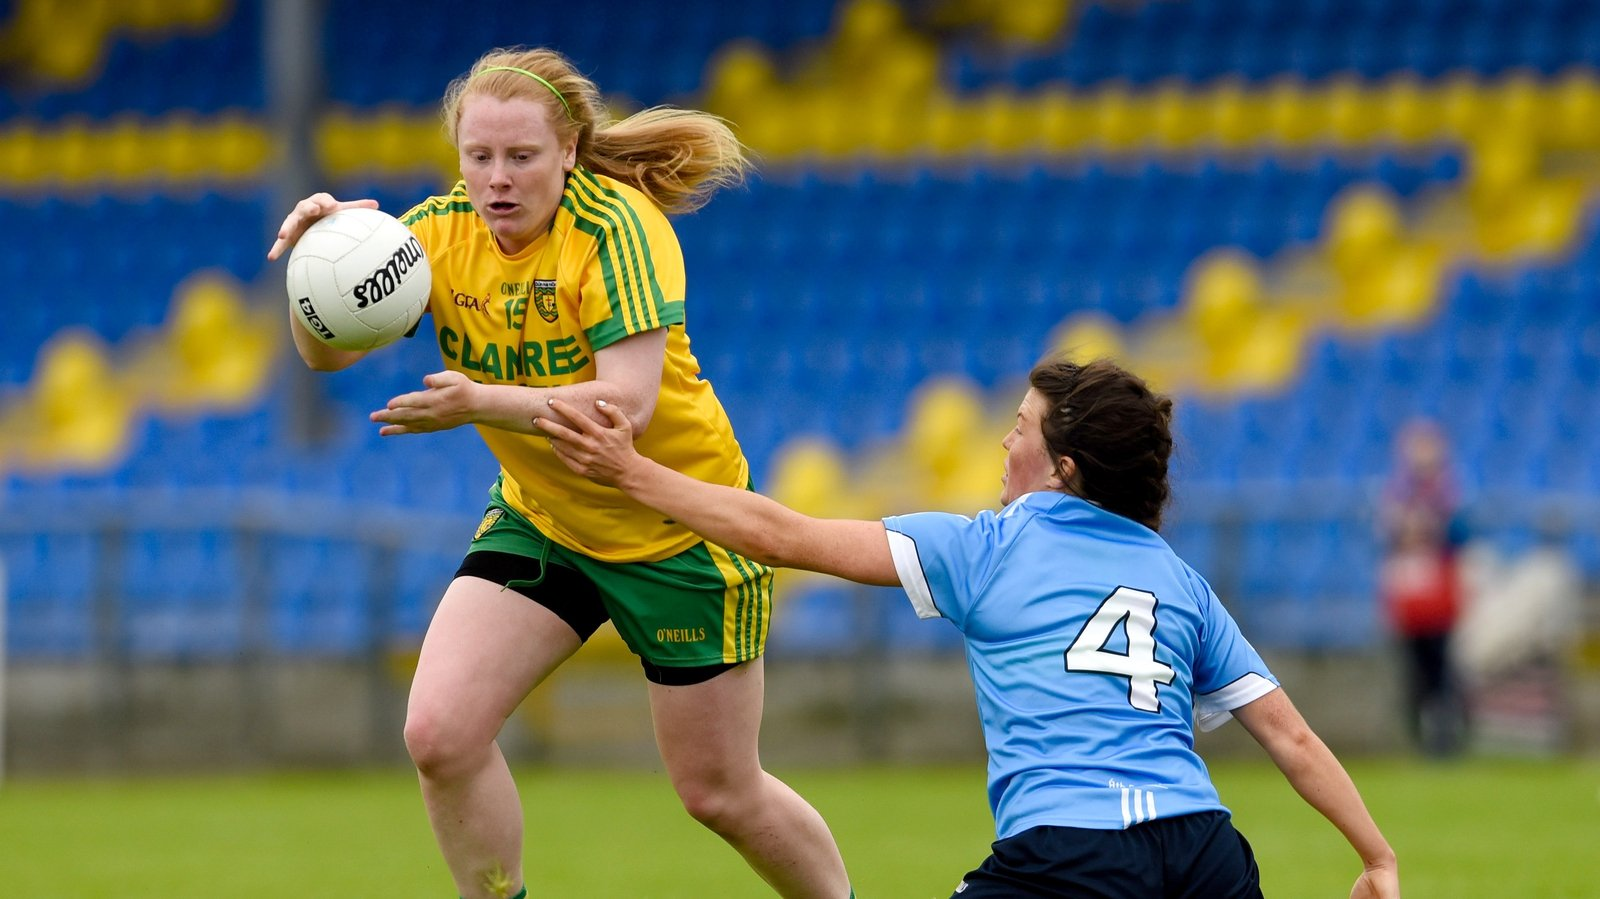 Image - Barrett in action for Donegal in 2016